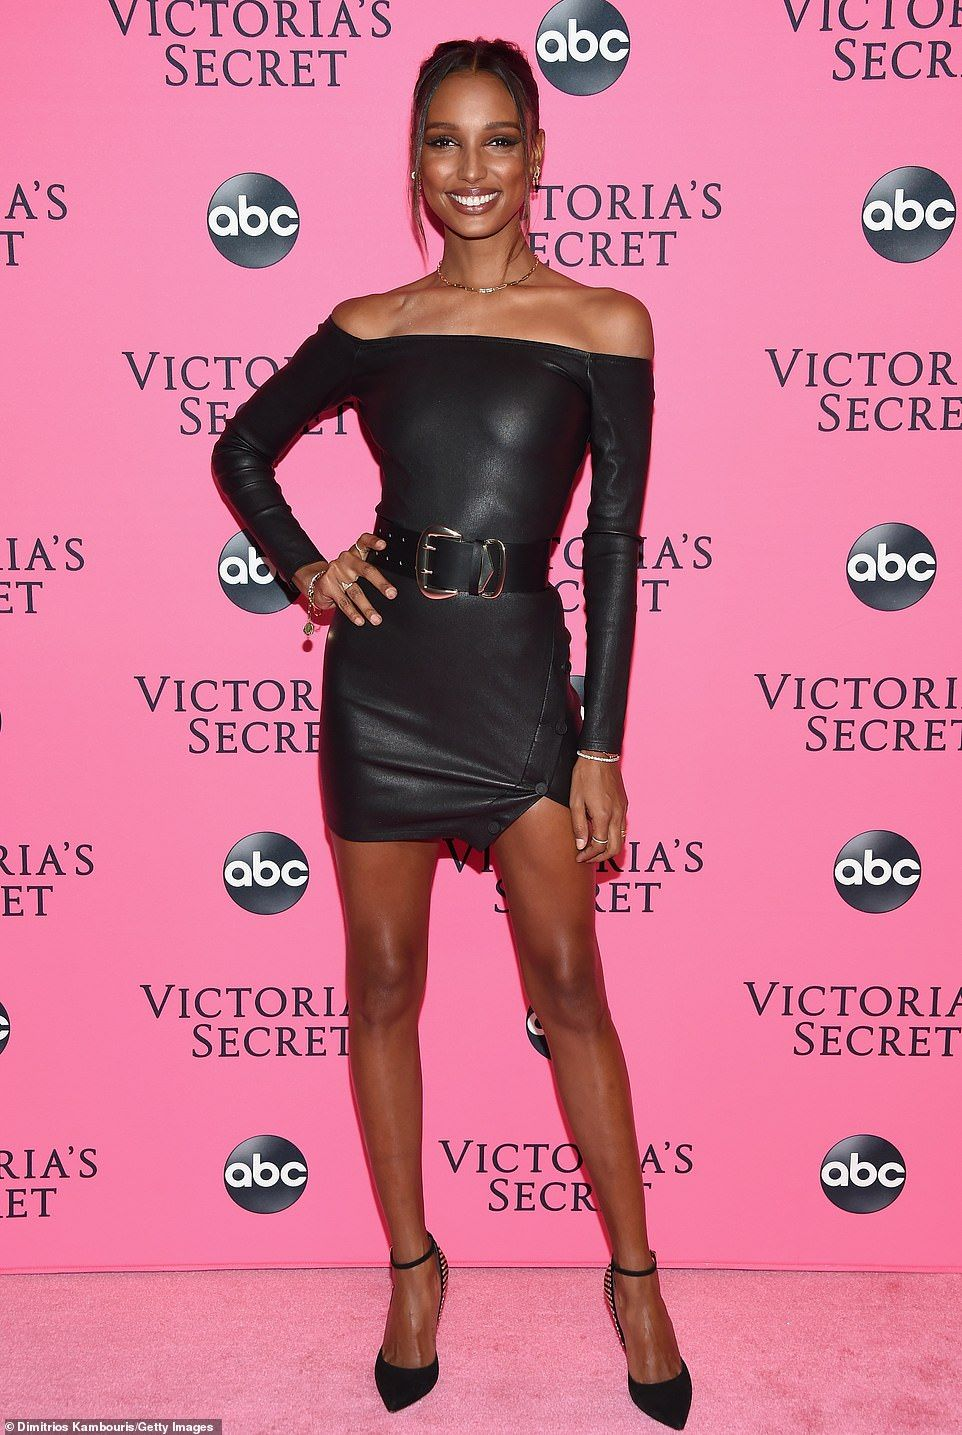 Winnie Harlow And Fellow Angels Dazzle In Black At Vs Viewing Party Jasmine Tookes Victoria Secret Fashion Show Victoria Secret [ 1435 x 962 Pixel ]